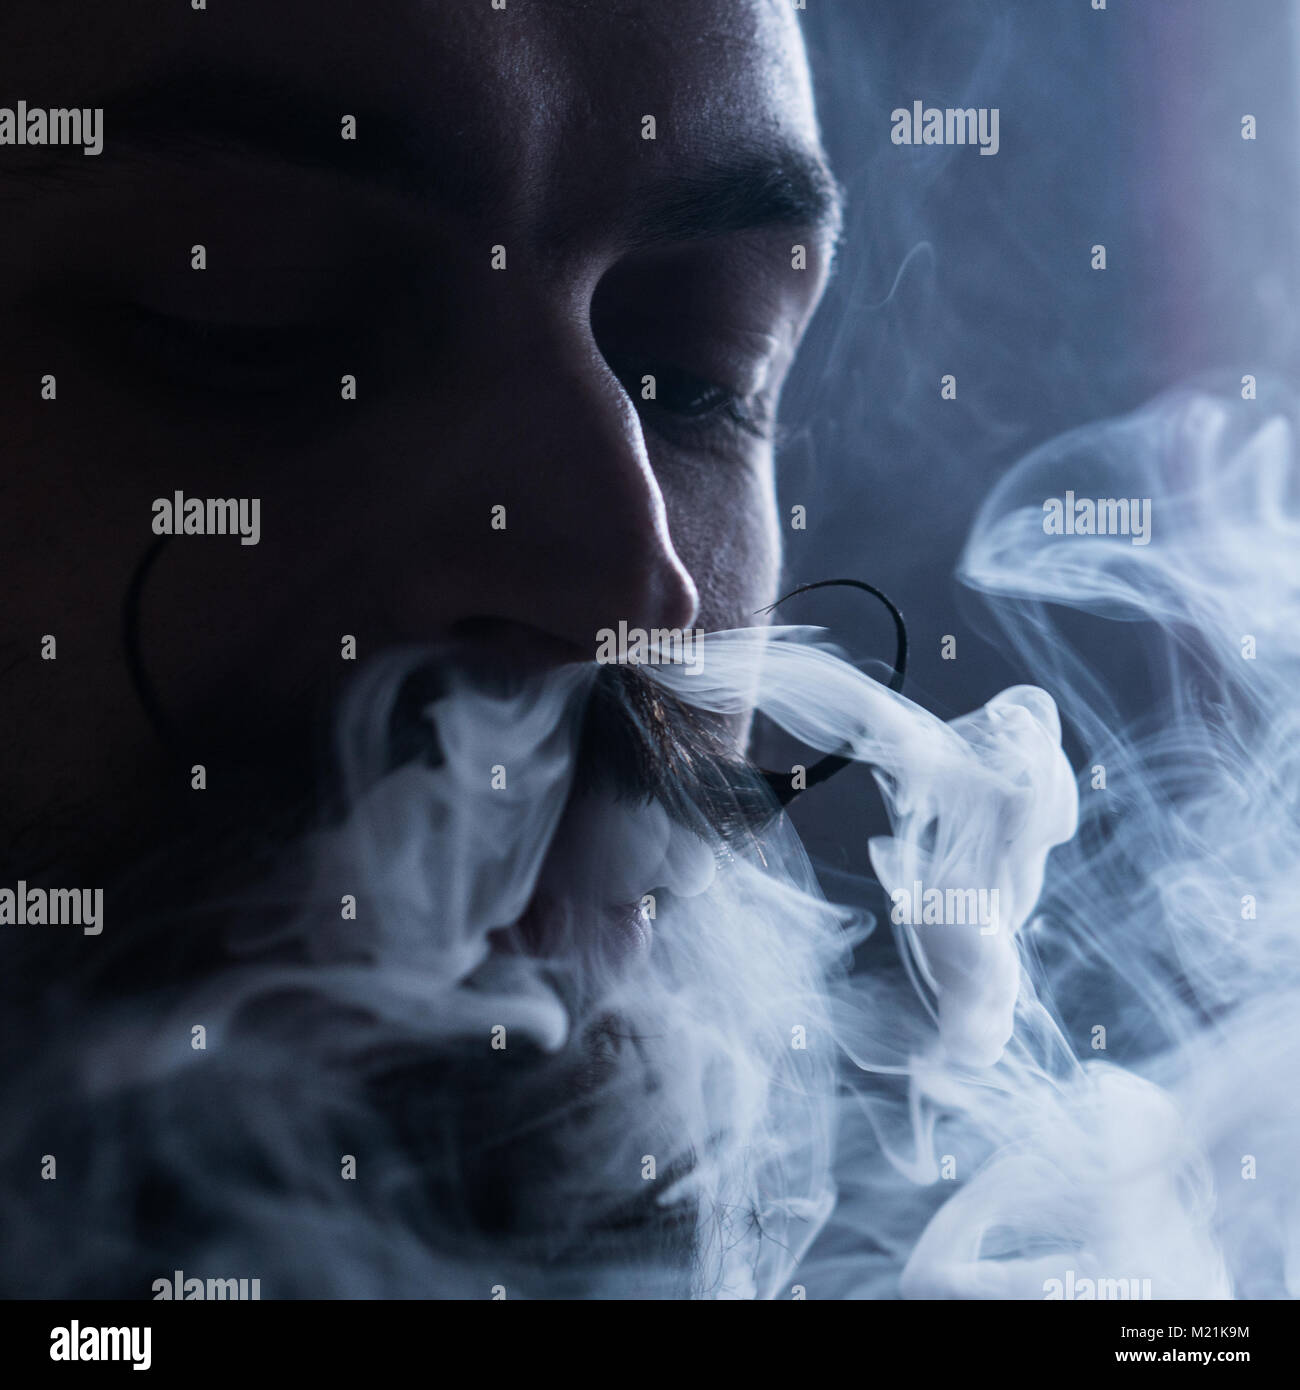 Man with Beard and Mustages Vaping an Electronic Cigarette. Vaper Hipster Smoke Vaporizer and Exhals Smoke Flow - Stock Image